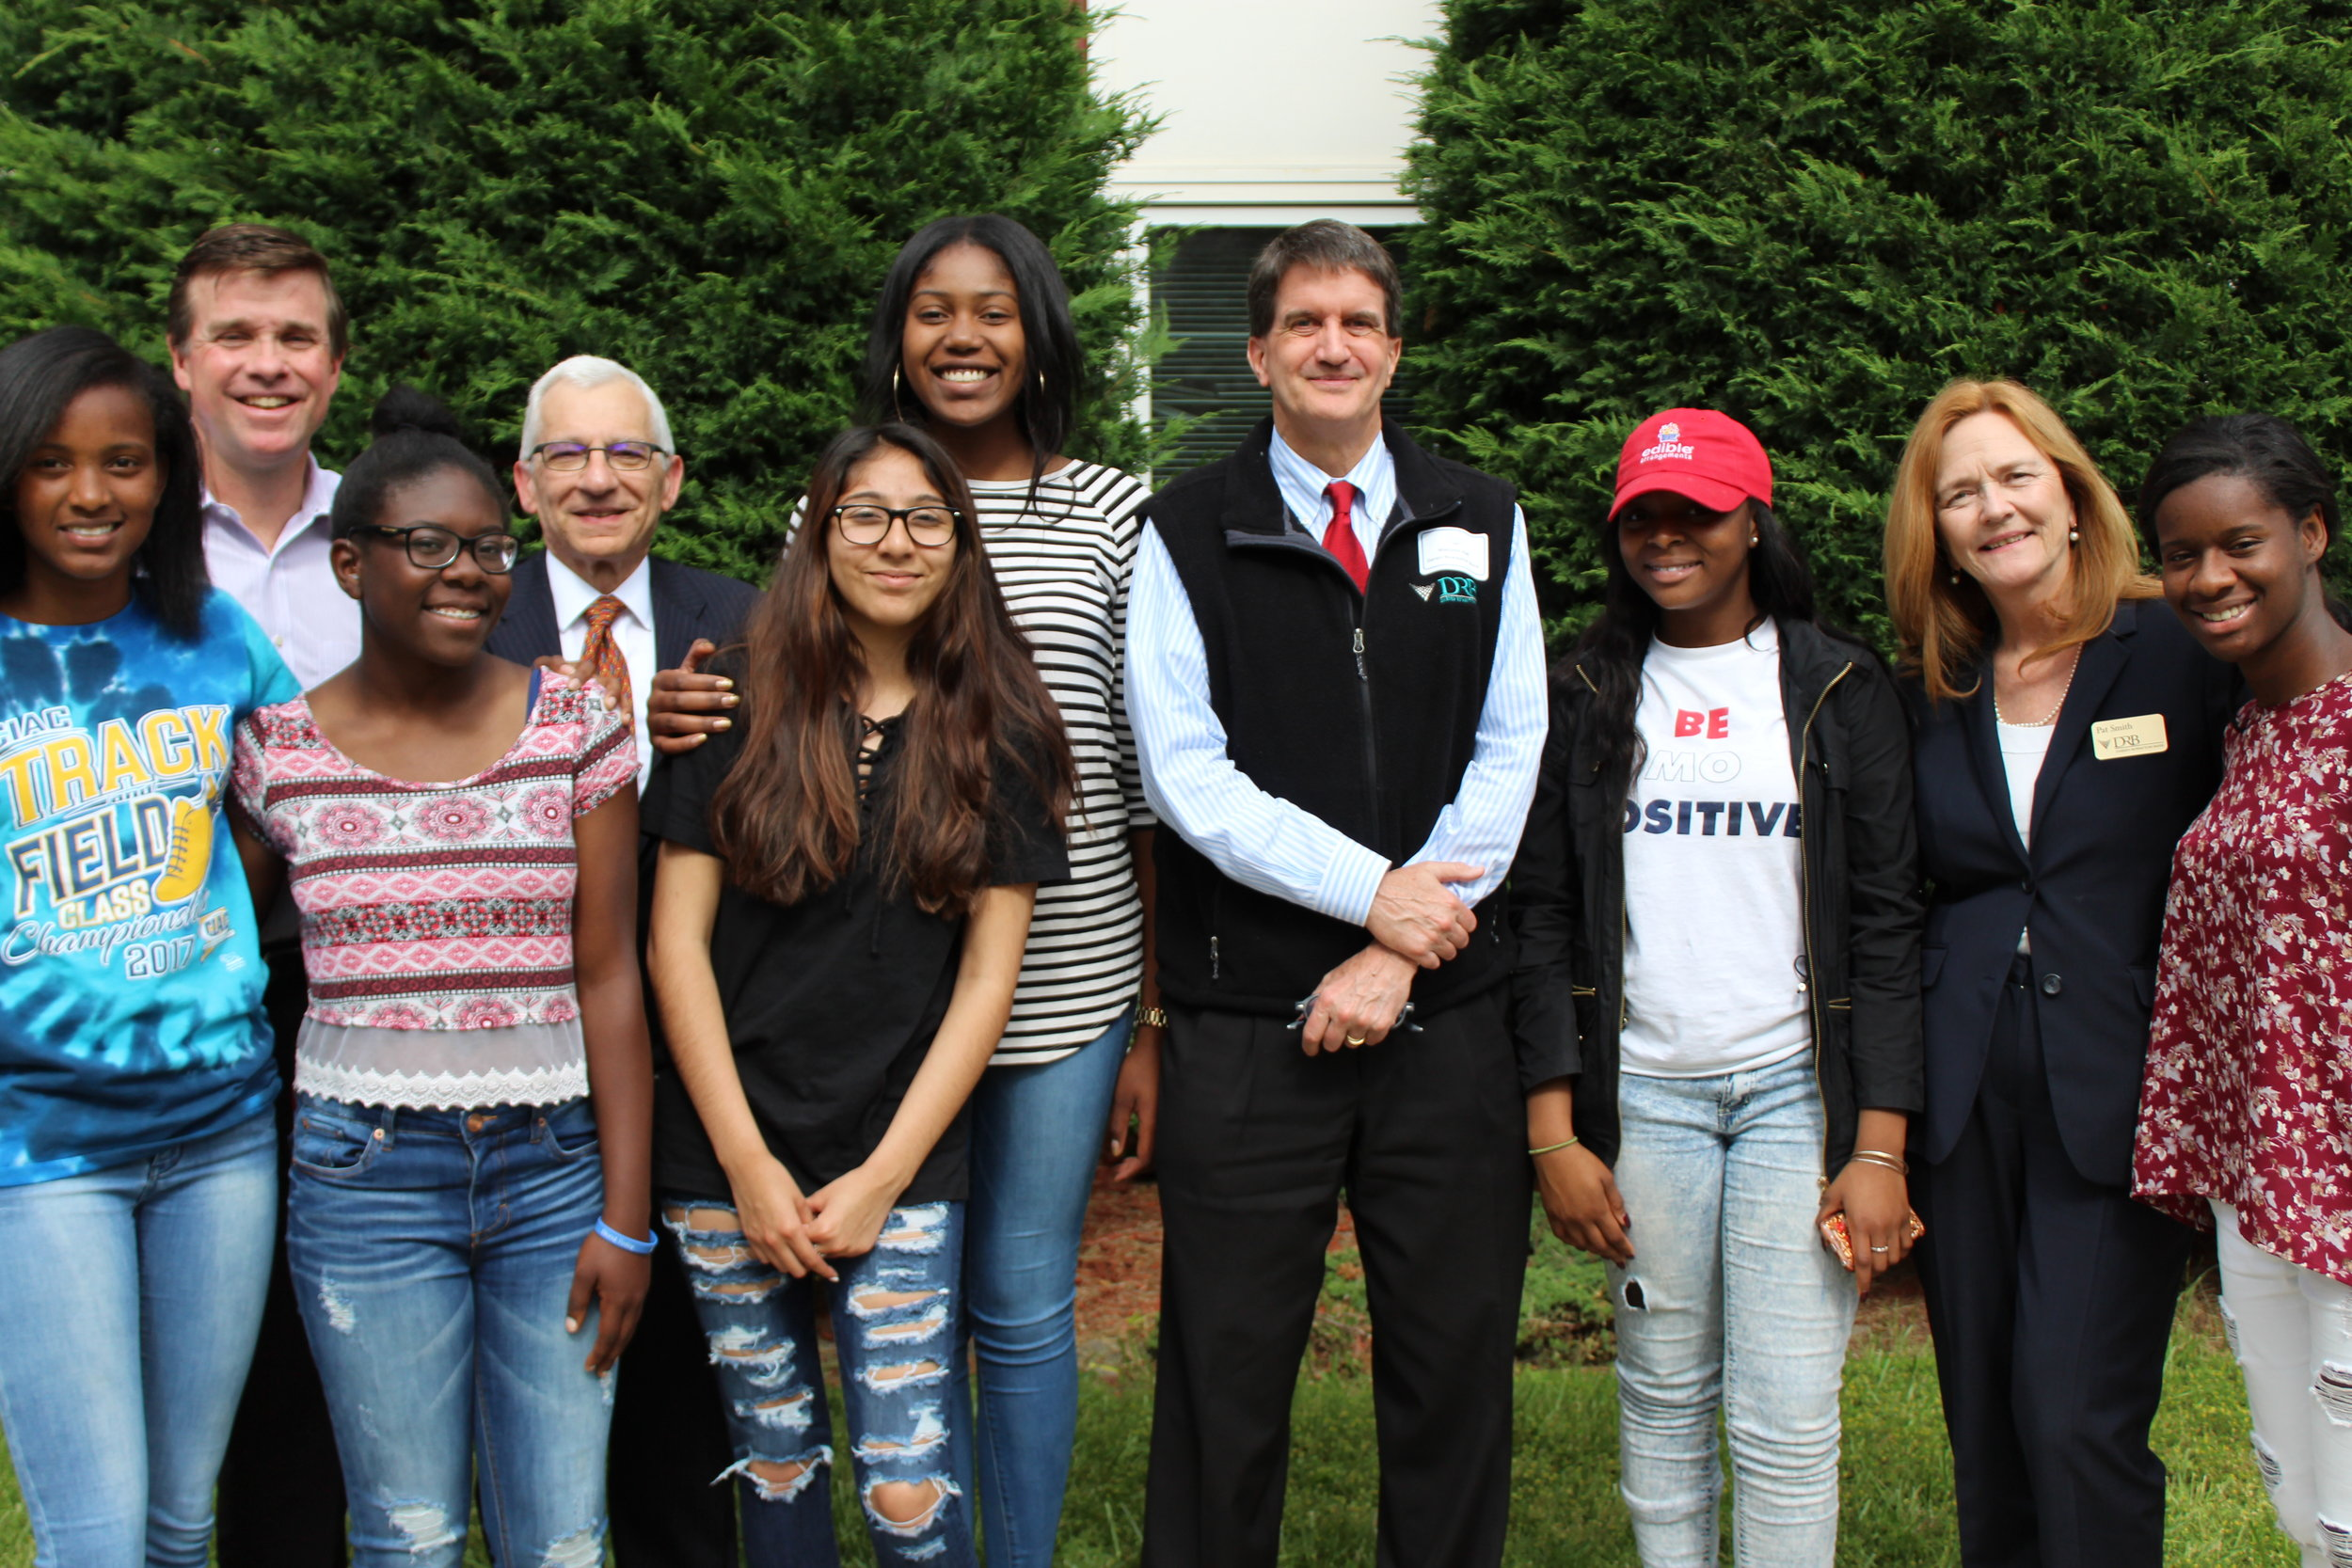 Standing with Carver students, (L-R) Joe Gallagher, Carver's Director of Philanthropy;Robert Mantilia, SVP; Malcolm Hall, Business Development Officer; and Pat Smith, Rowayton Branch Bank Manager